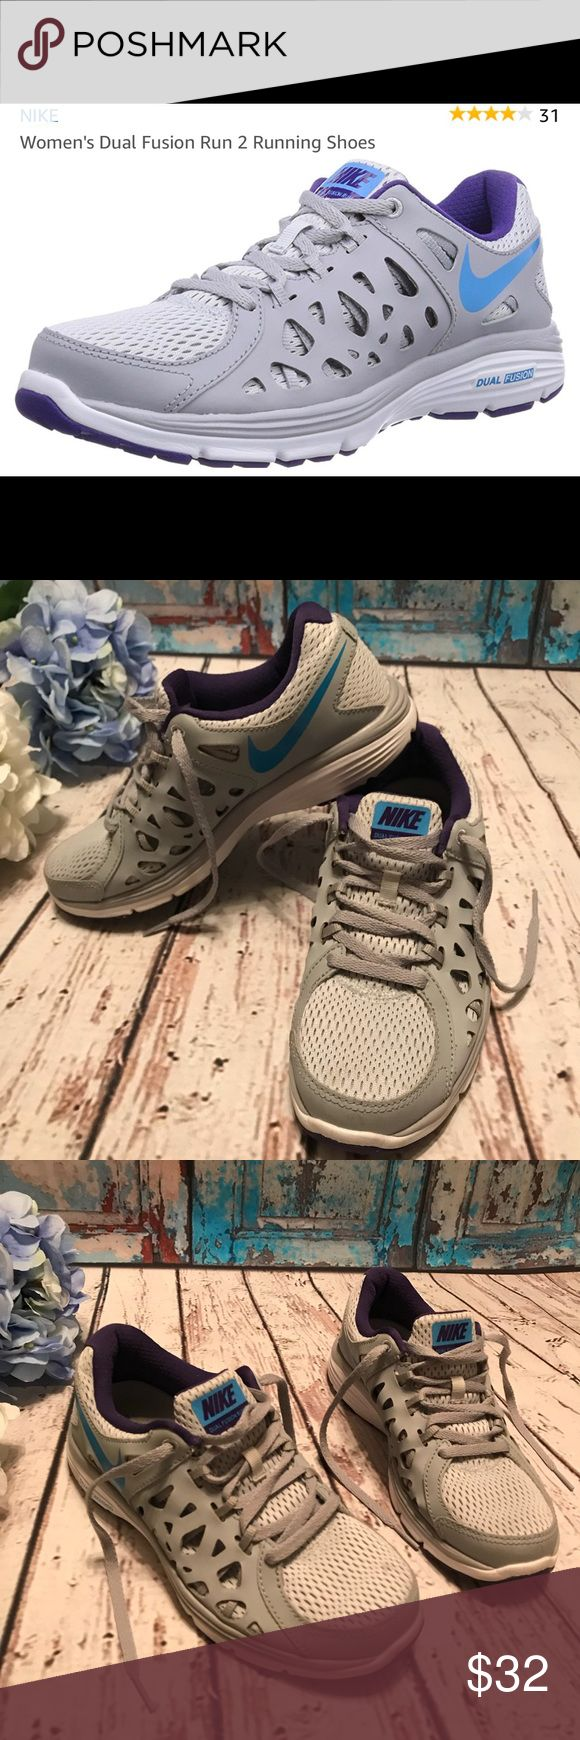 Nike dual fusion 2 women's running shoes Nike dual fusion 2 women's running shoes  Size 6.5 Almost New Very clean  Gorgeous and Comfy for your next run❤️ Nike Shoes Athletic Shoes